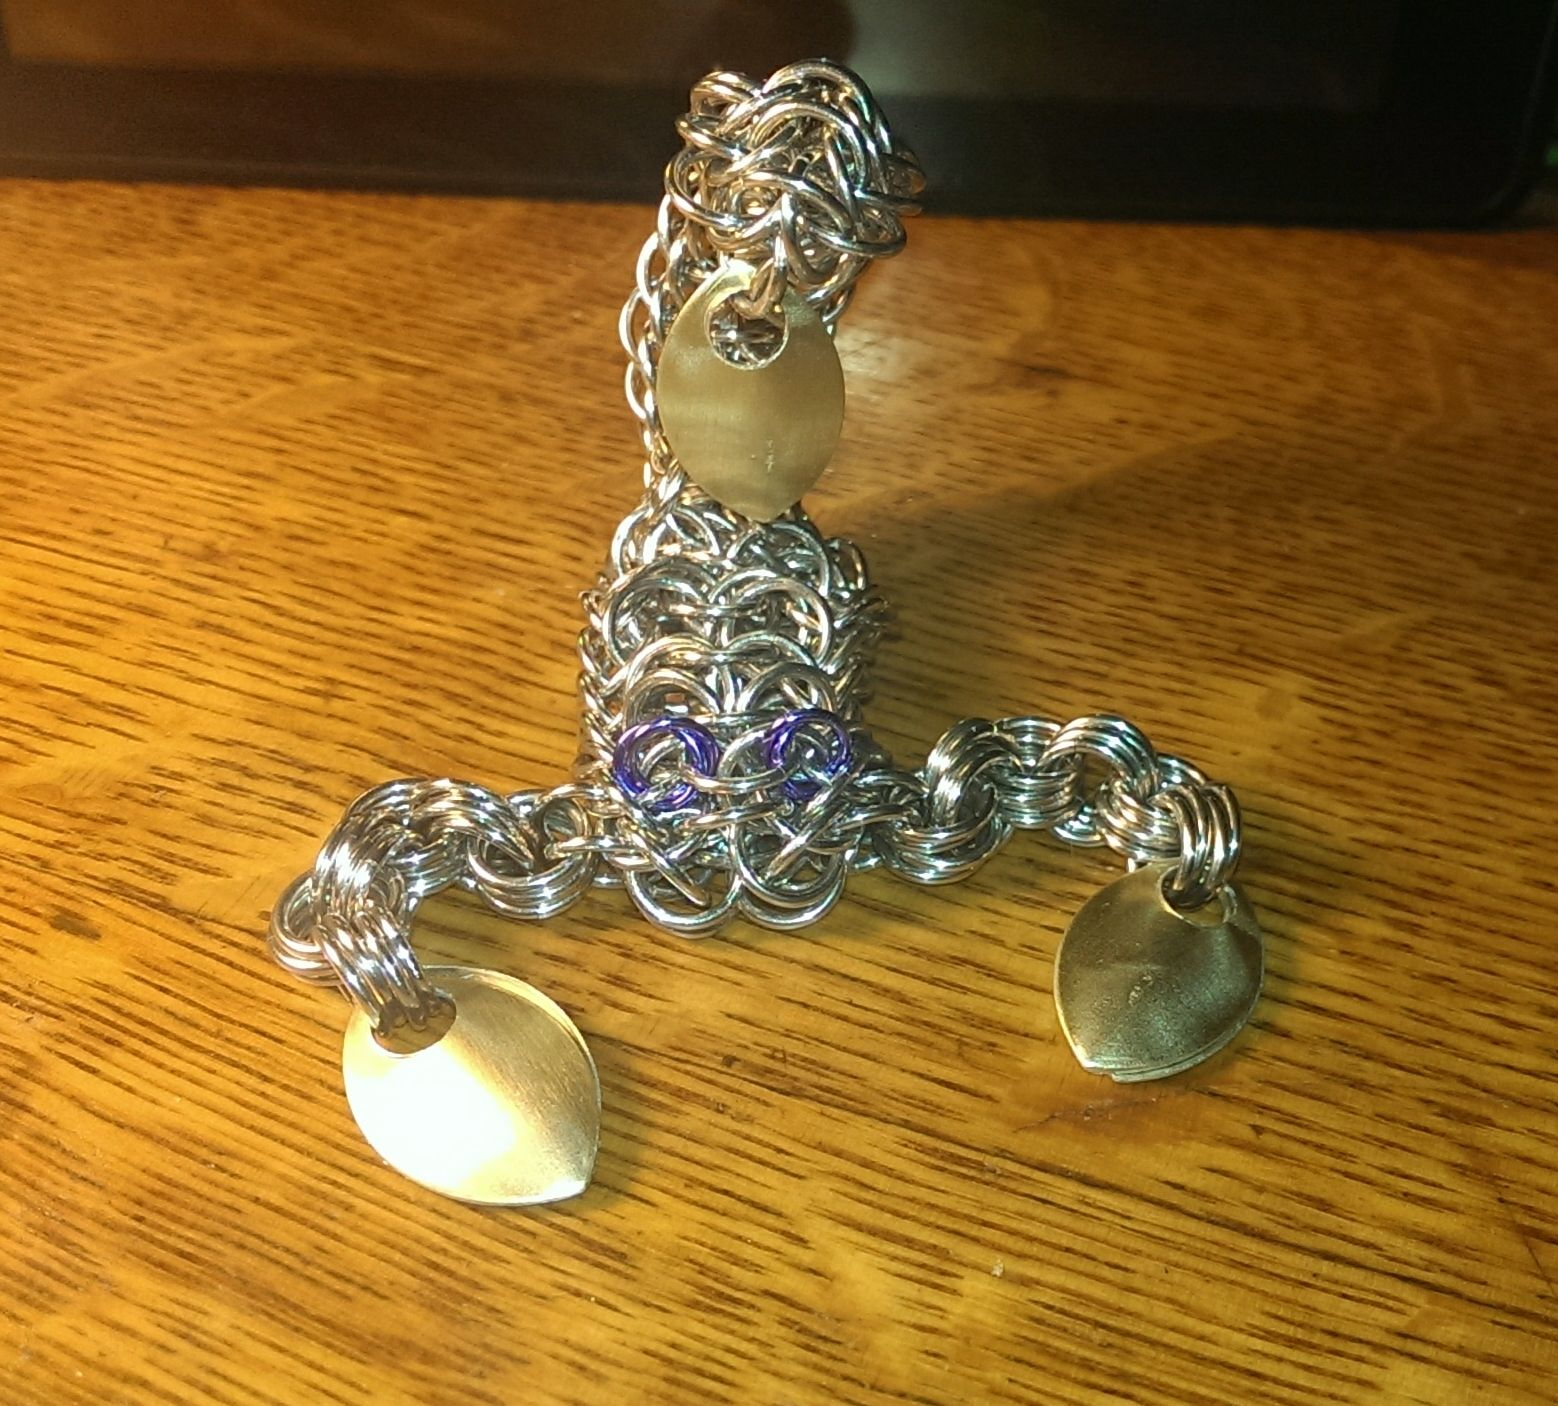 my first chainmail scorpion